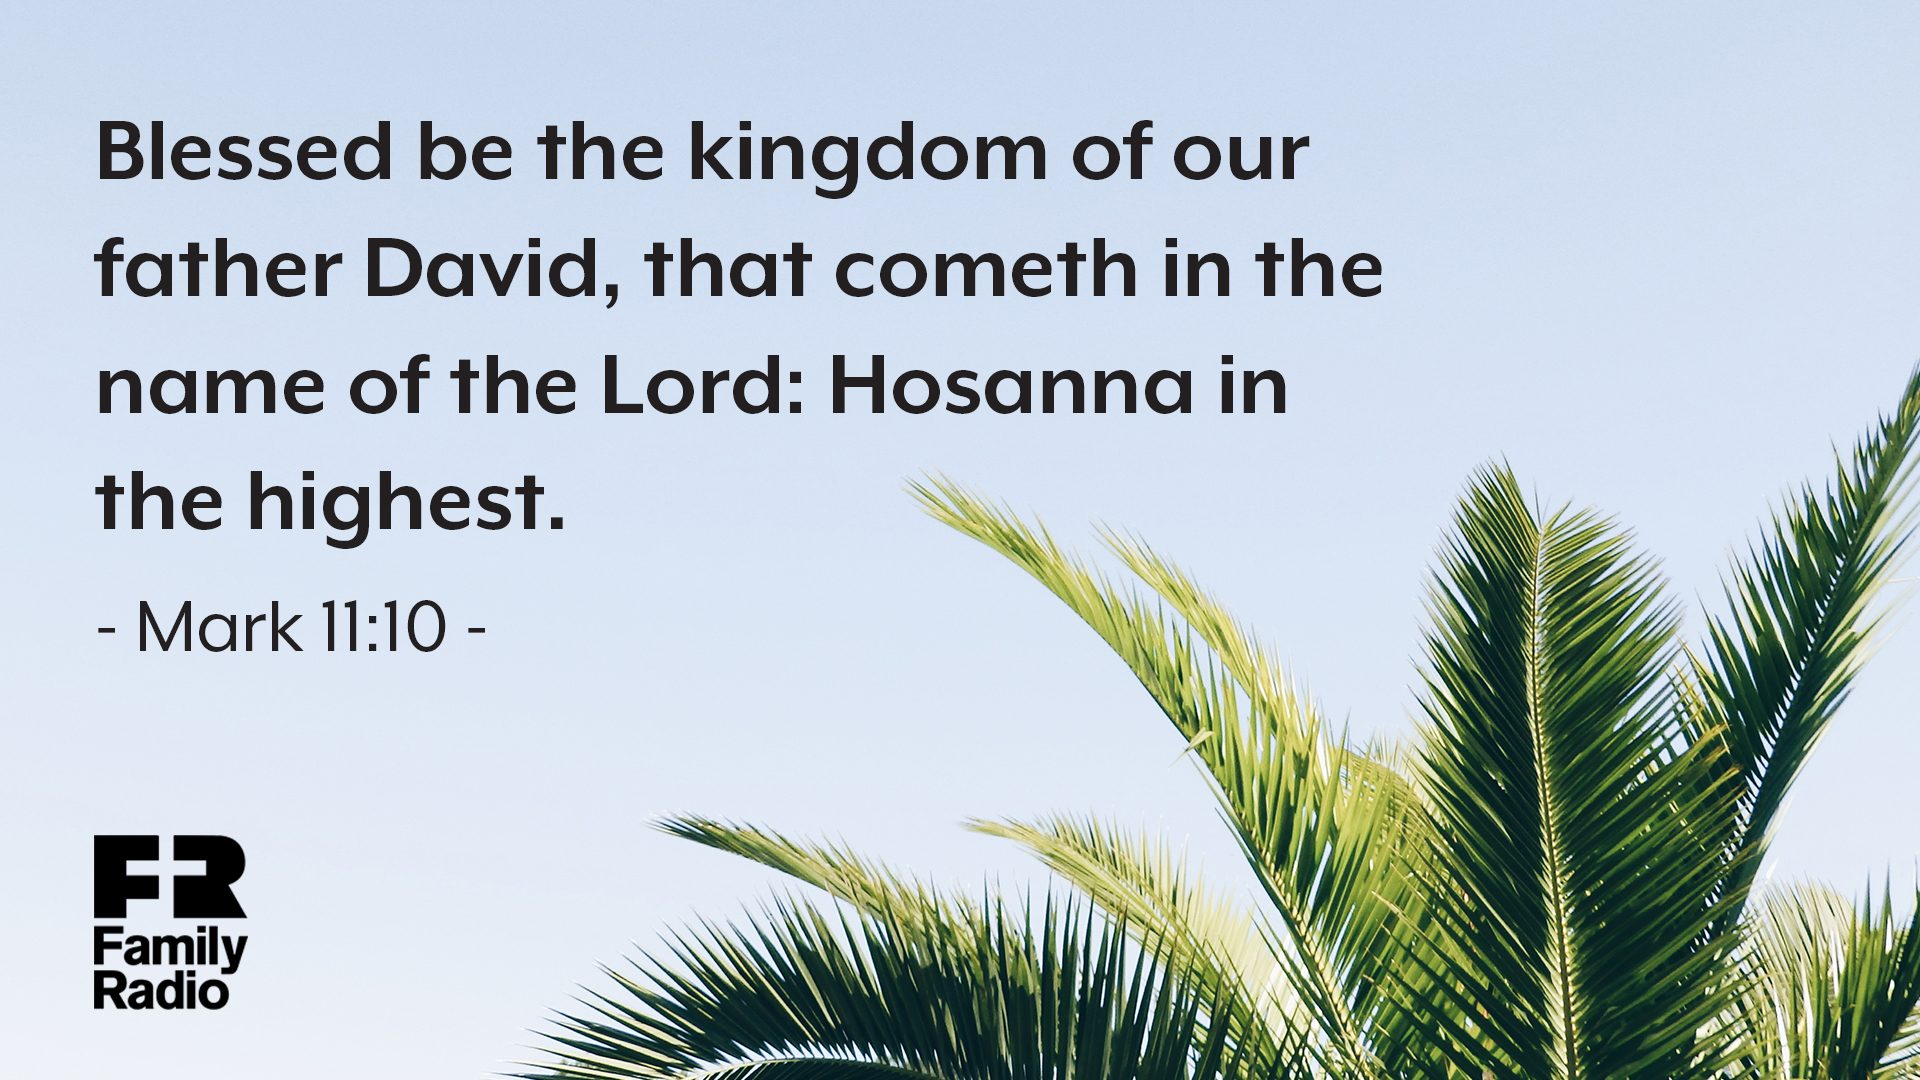 """Blessed be the kingdom of our father David, that cometh in the name of the Lord: Hosanna in the highest."""